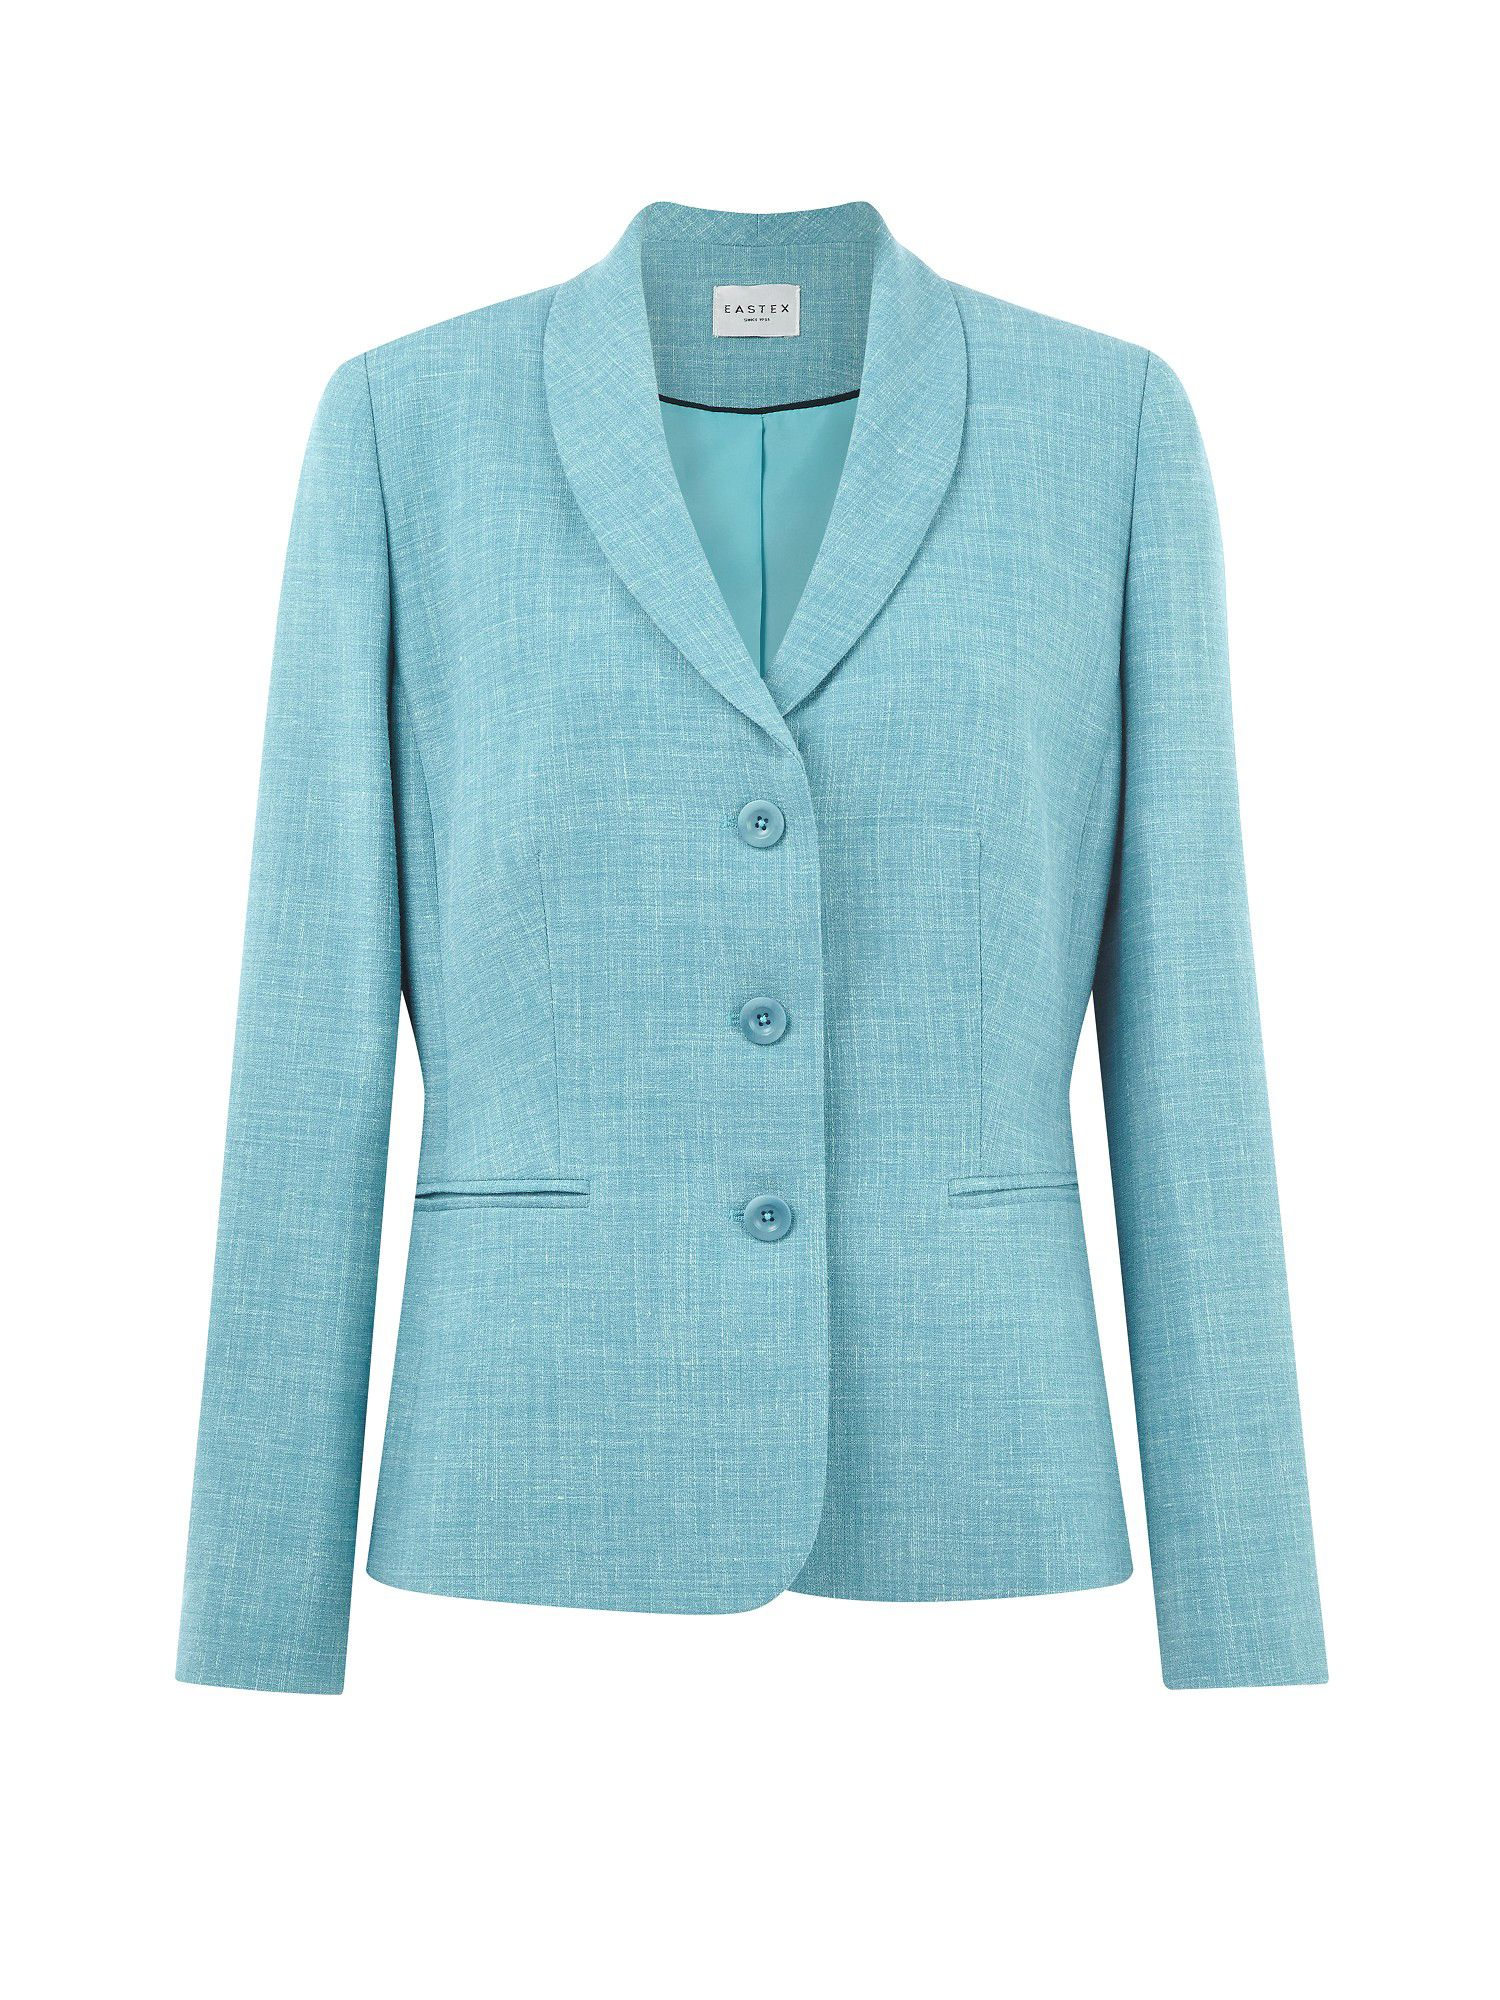 Avelana Textured Jacket